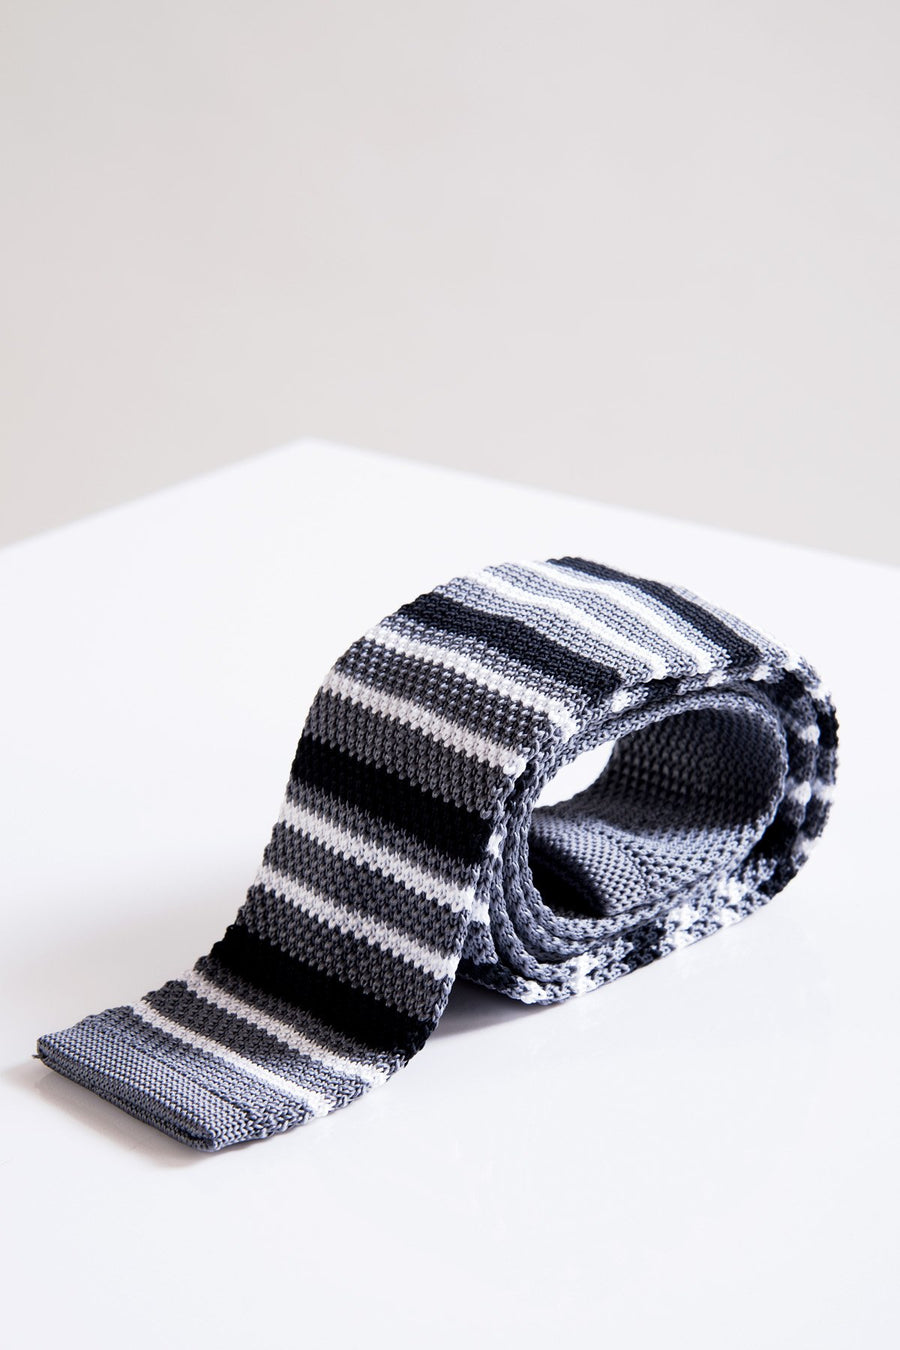 KT Grey Stripe Knitted Tie - Wedding Suit Direct